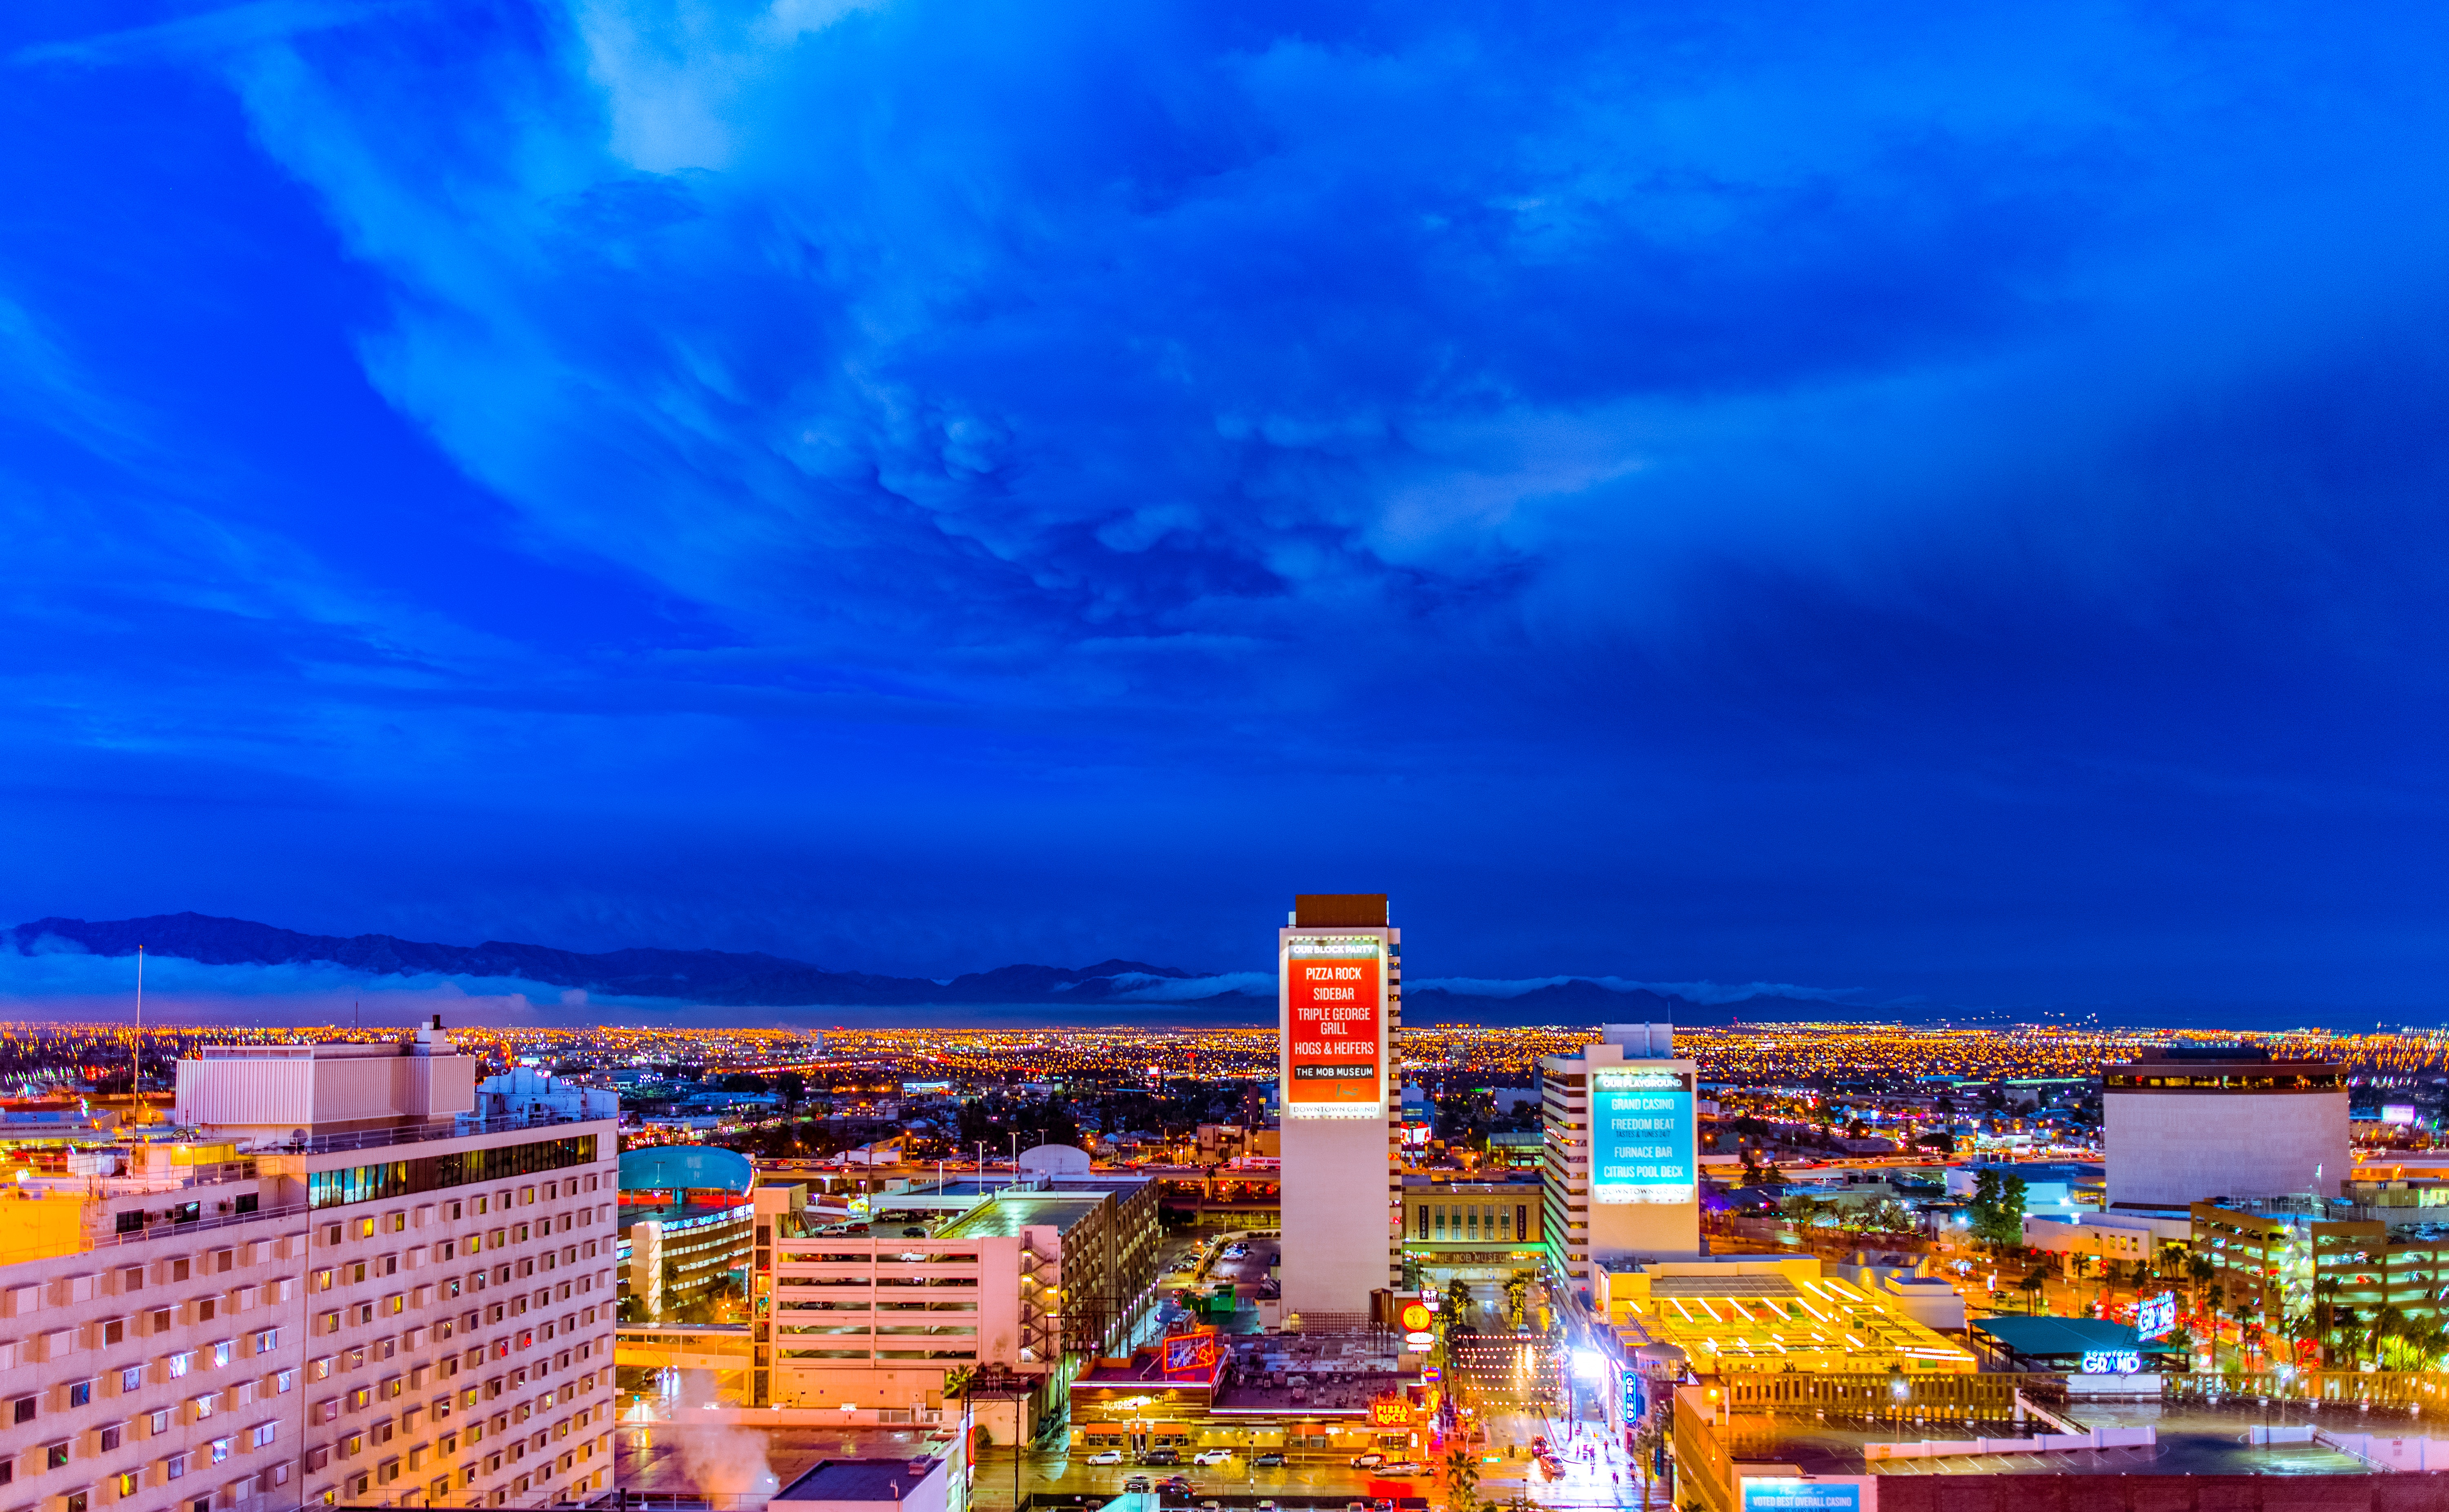 High Angle View of City Scape, Architecture, Outdoors, Urban, Tower, HQ Photo